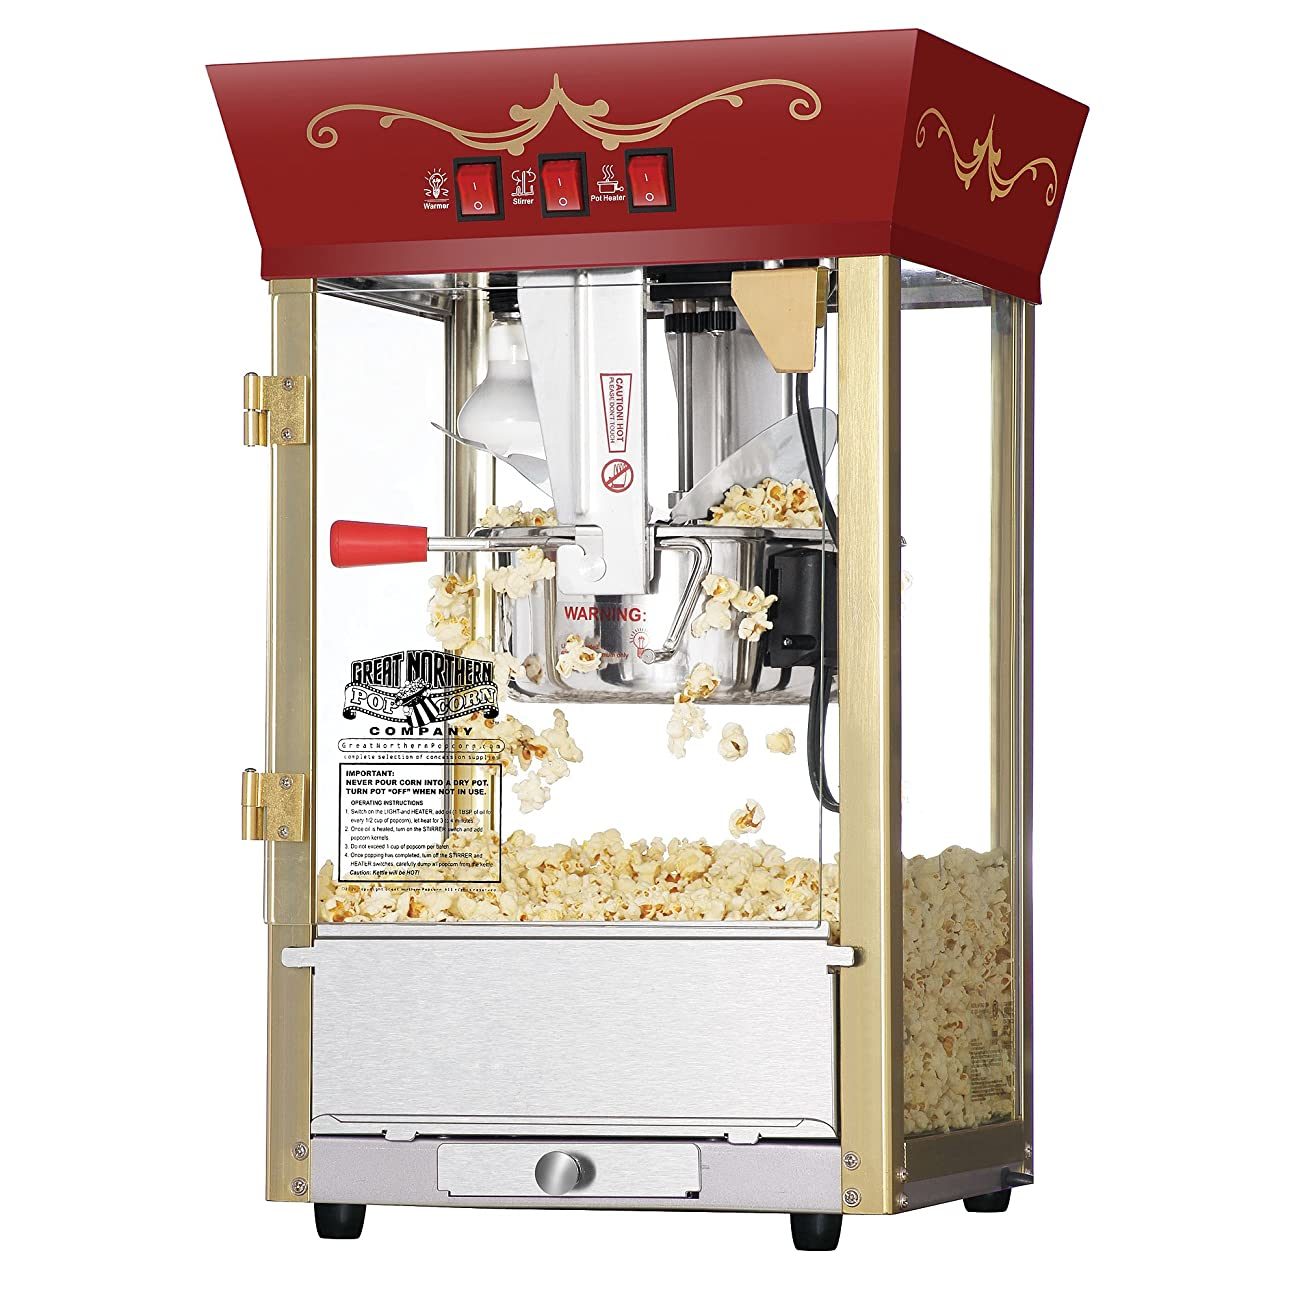 Great Northern Popcorn Red Matinee Movie Theater Style 8 oz. Ounce Antique Popcorn Machine 0